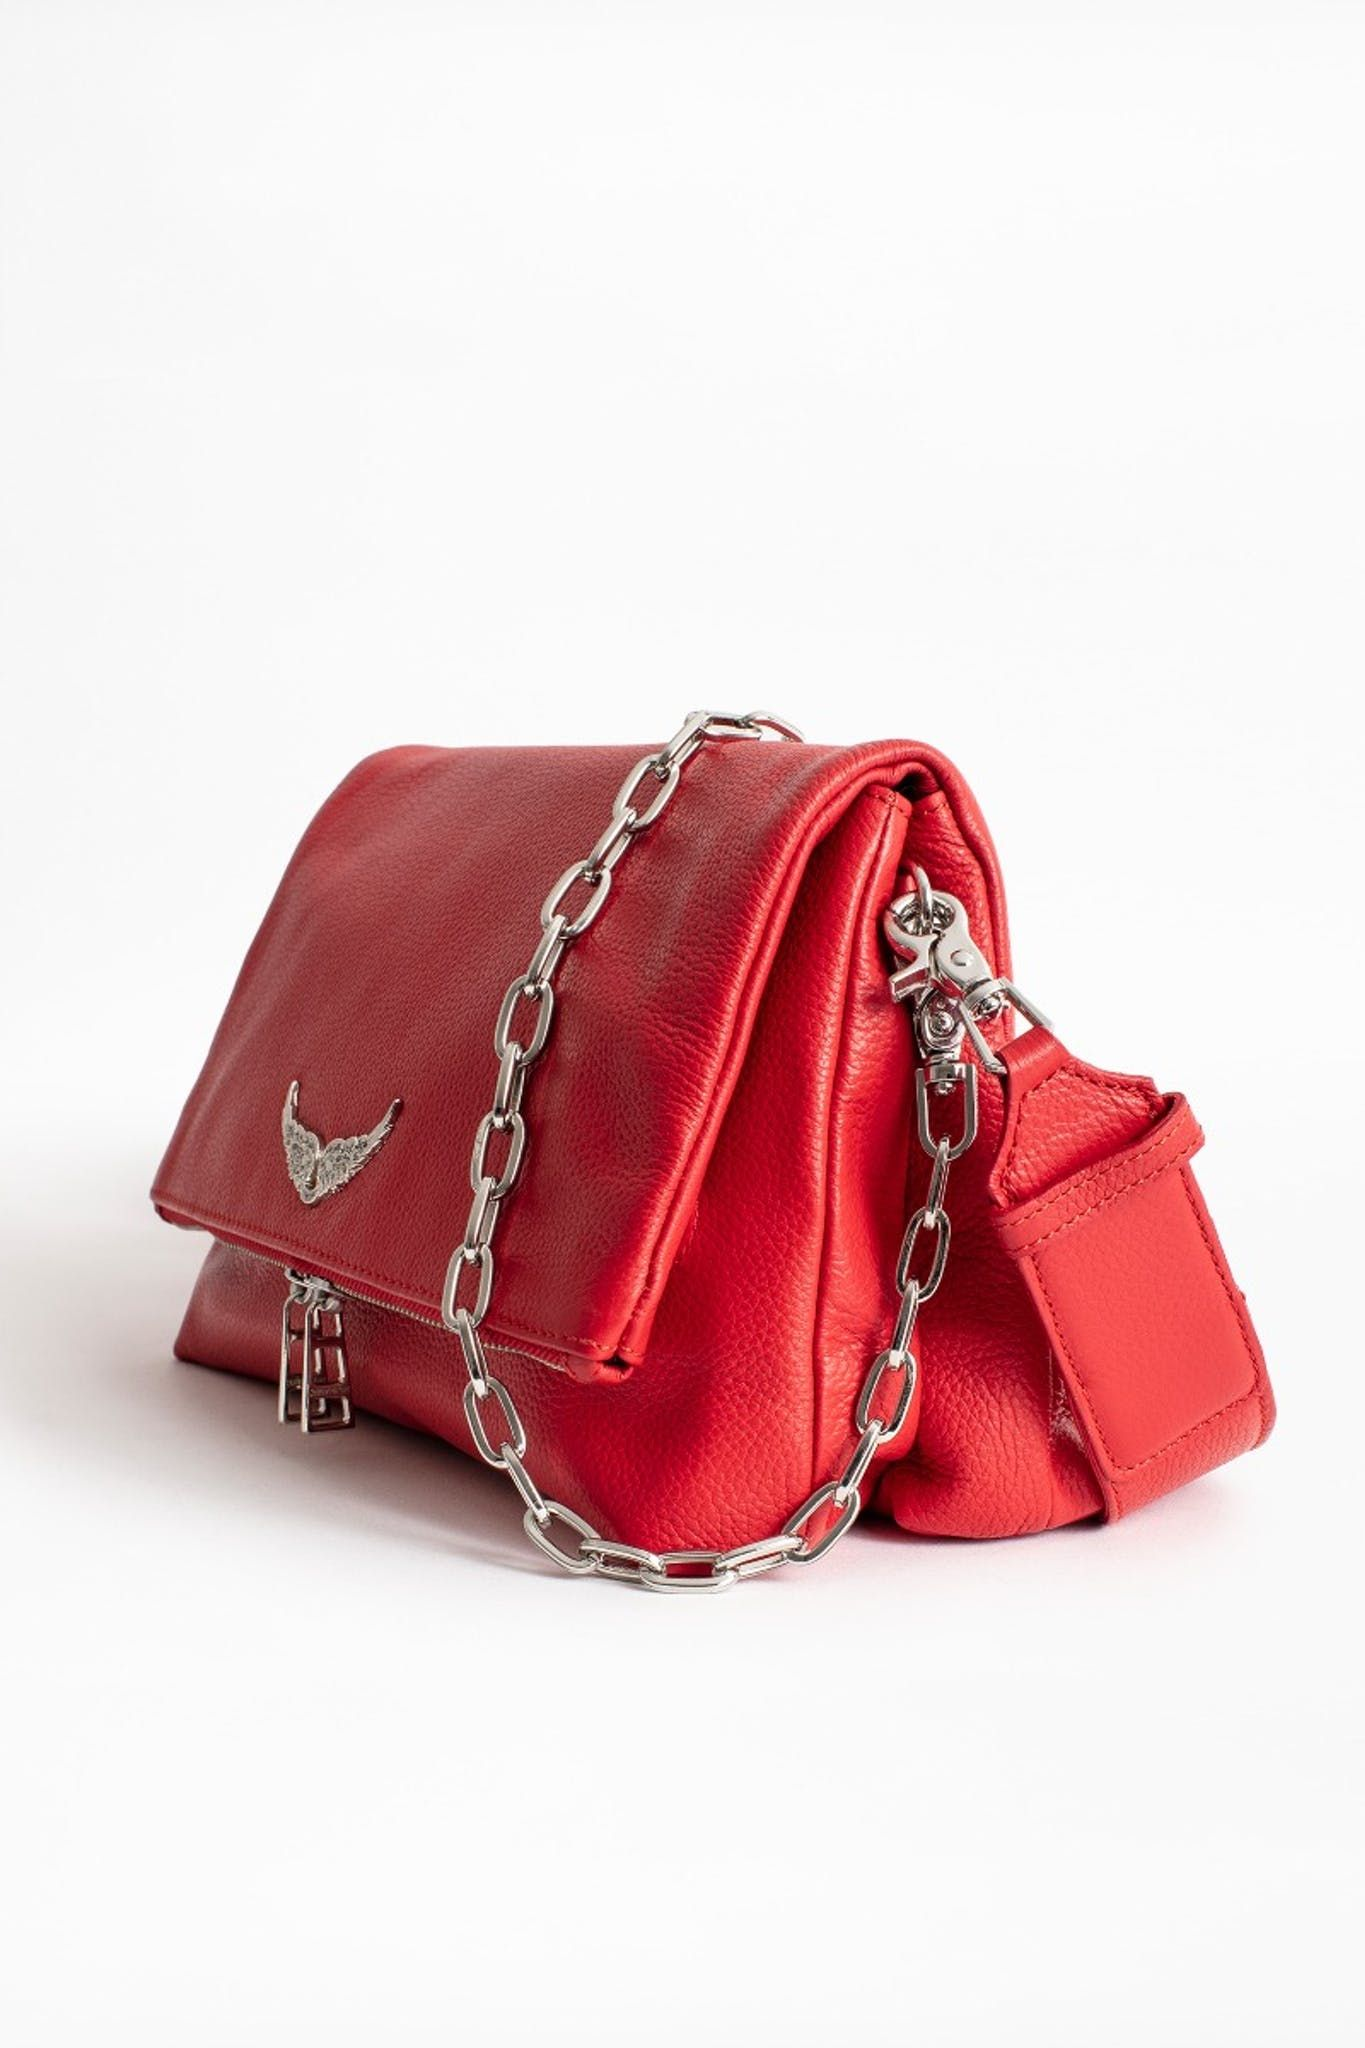 Rocky Grained Bag Bags Popular Bags Cloth Bags